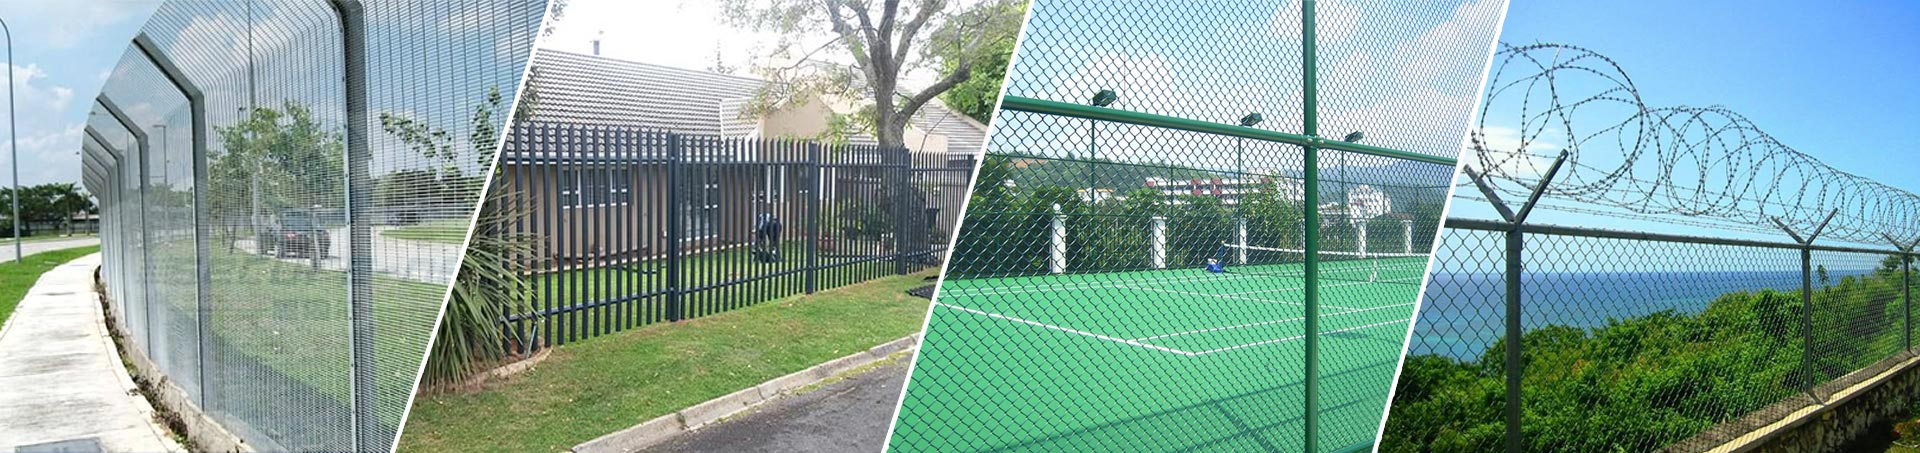 Fence and Enclosure Mesh